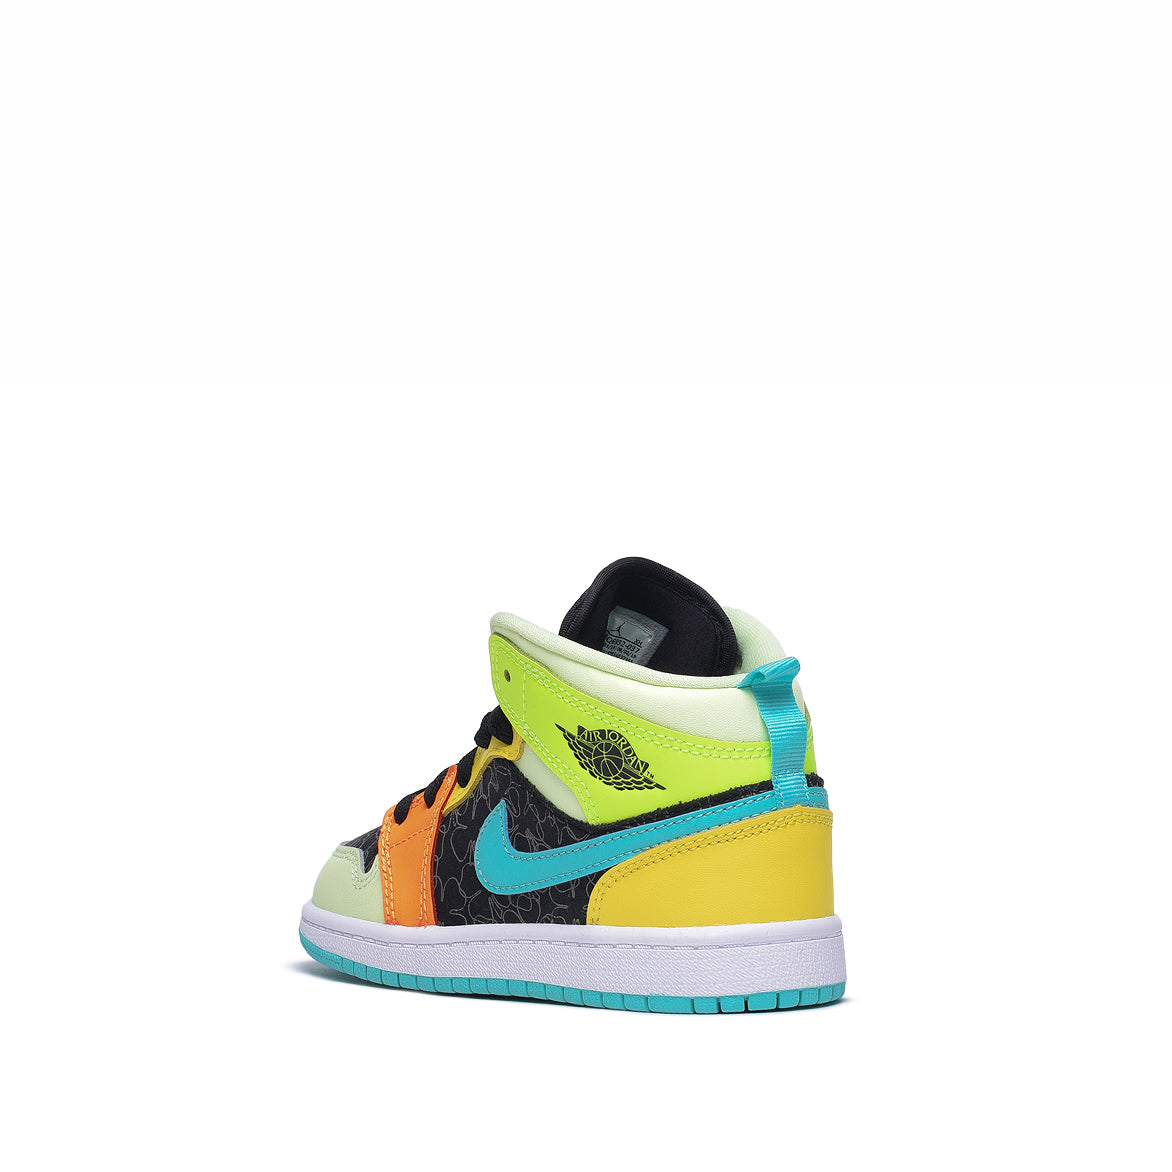 AIR JORDAN 1 MID SE (PS) - BLACK / AURORA GREEN / OPTI YELLOW